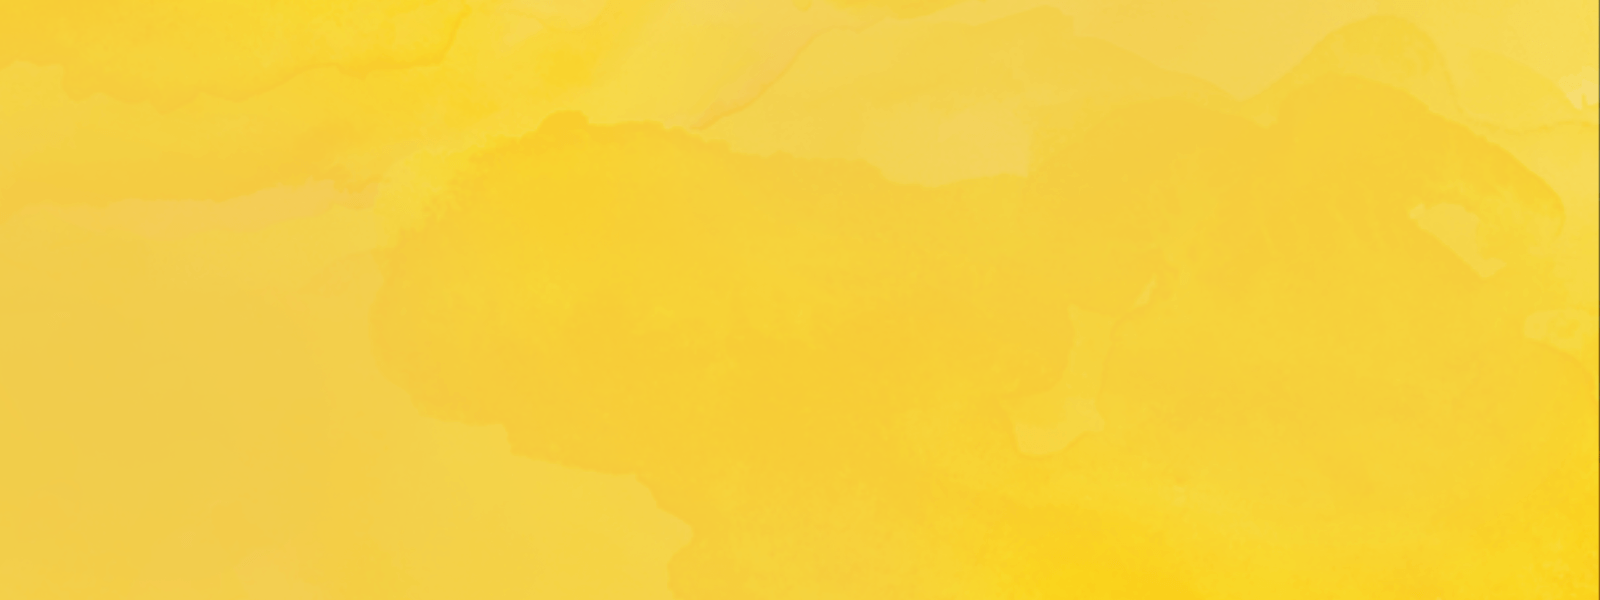 ks-headers-yellow